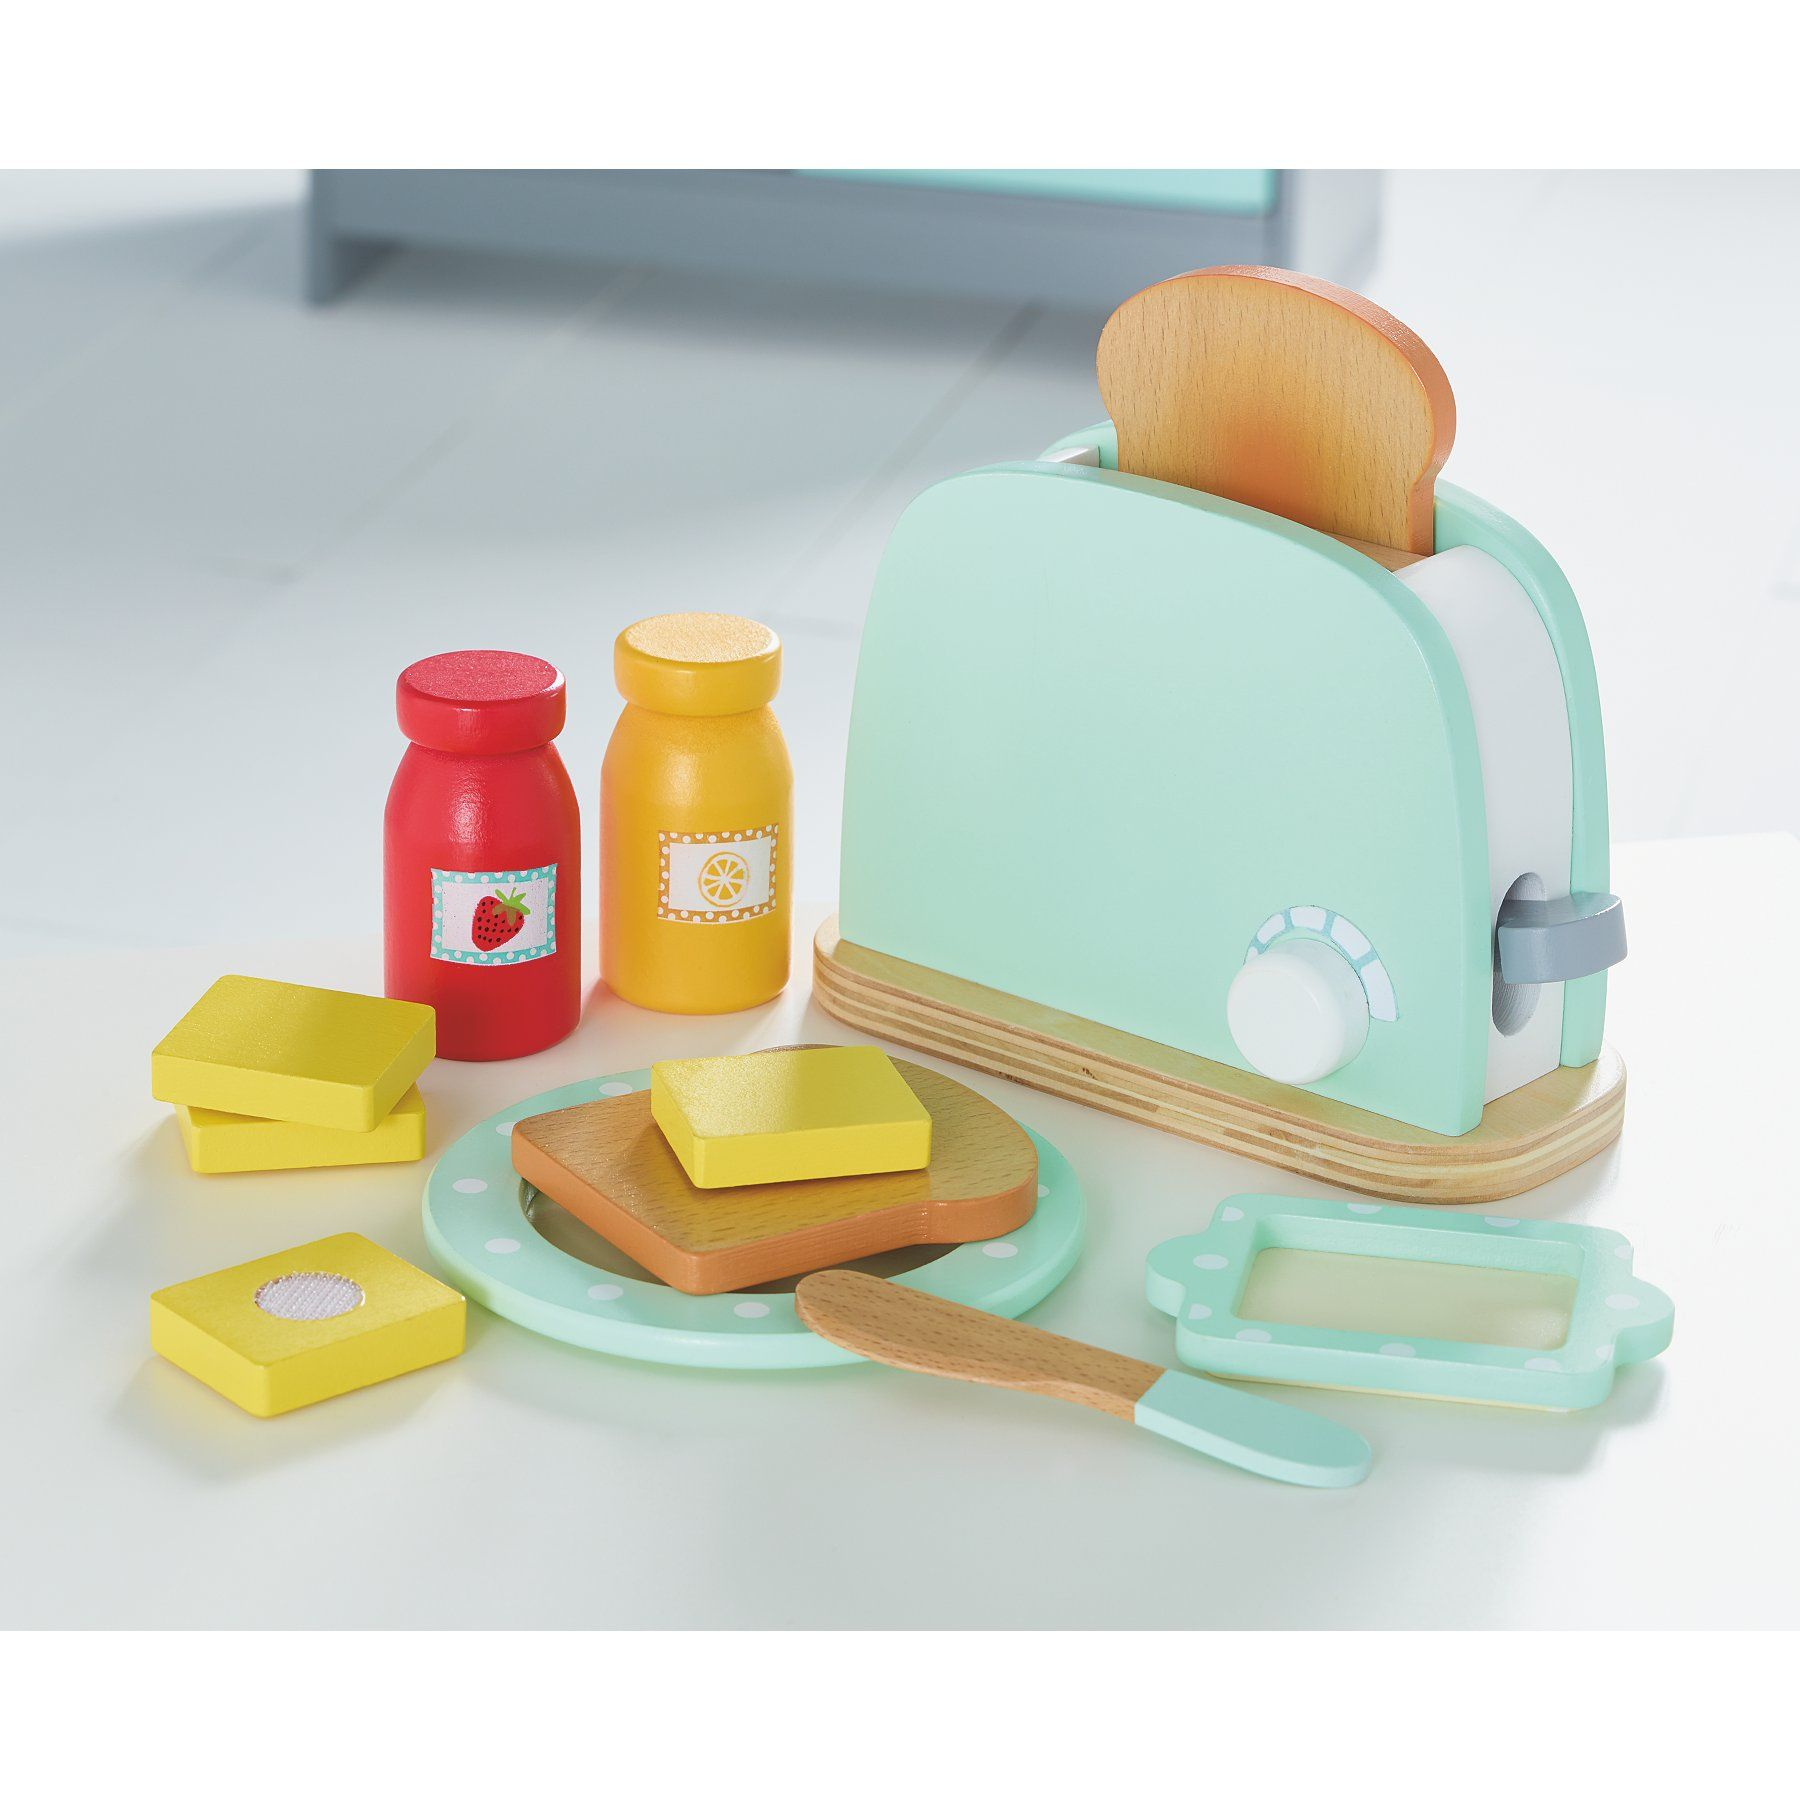 Home Wooden Toaster Toys & Character